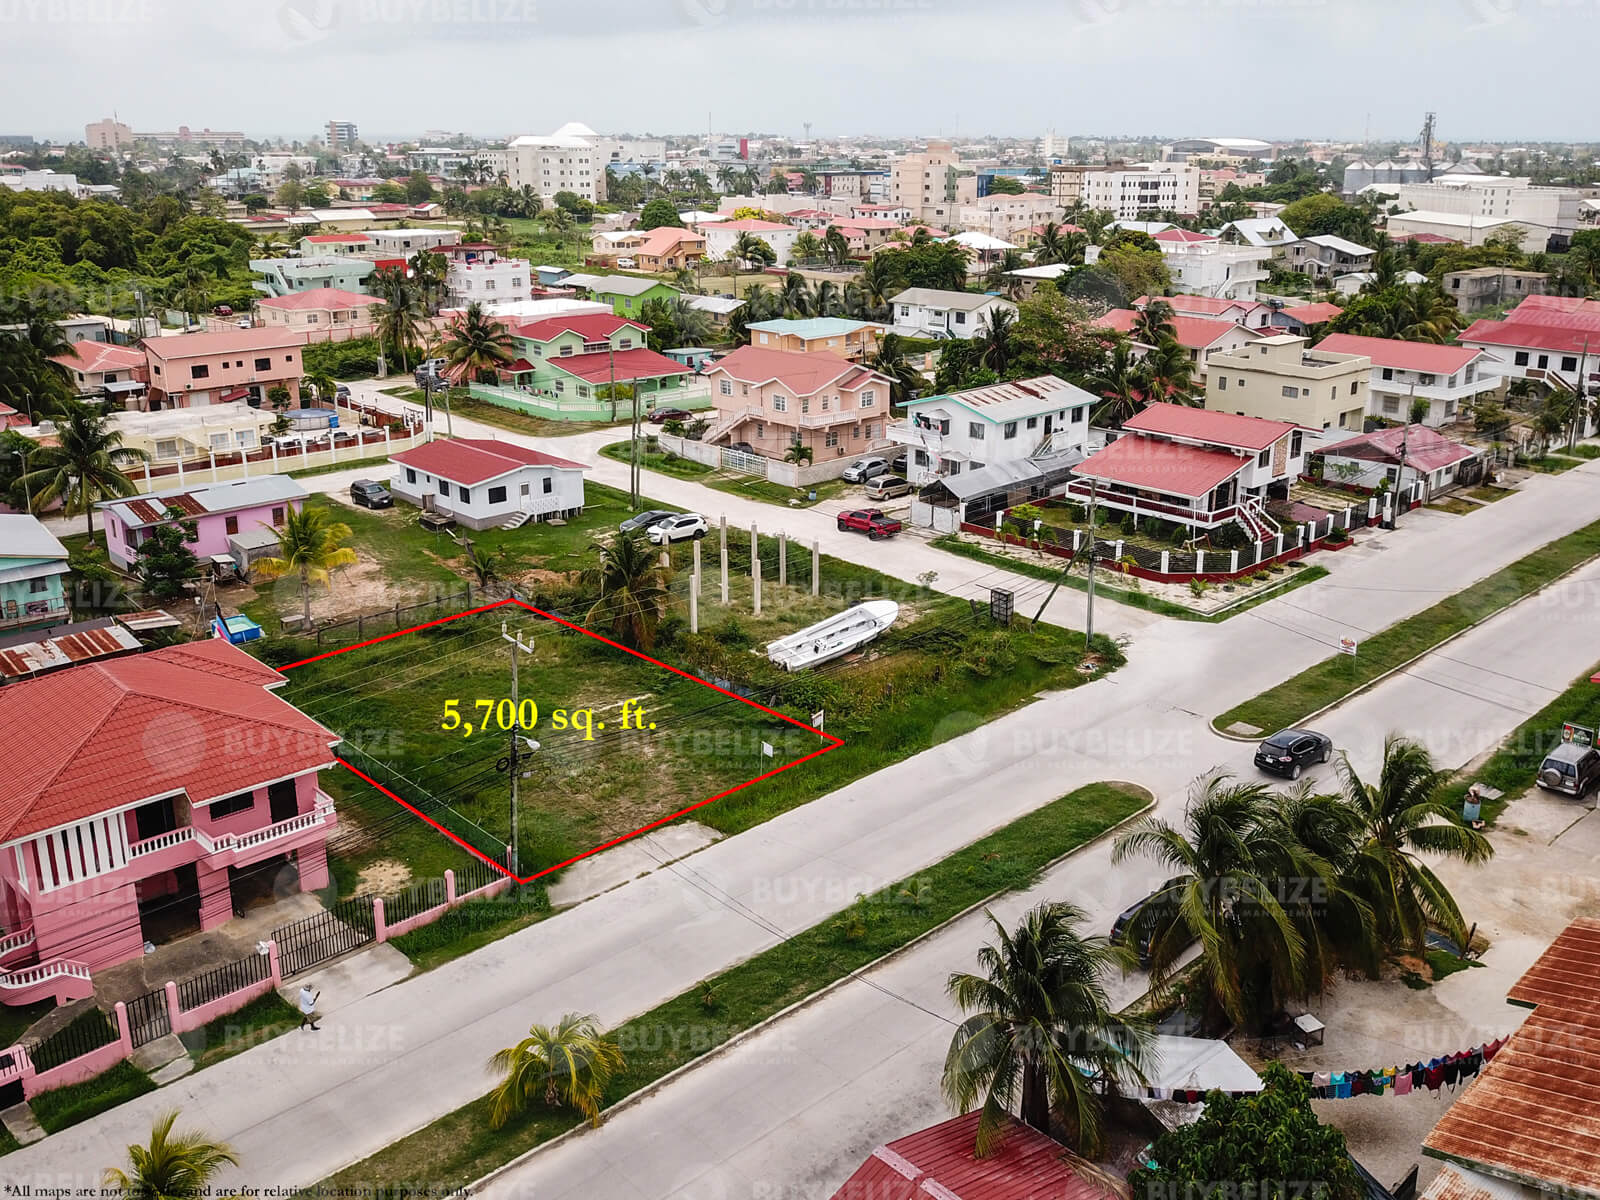 Land for Sale in Belize City